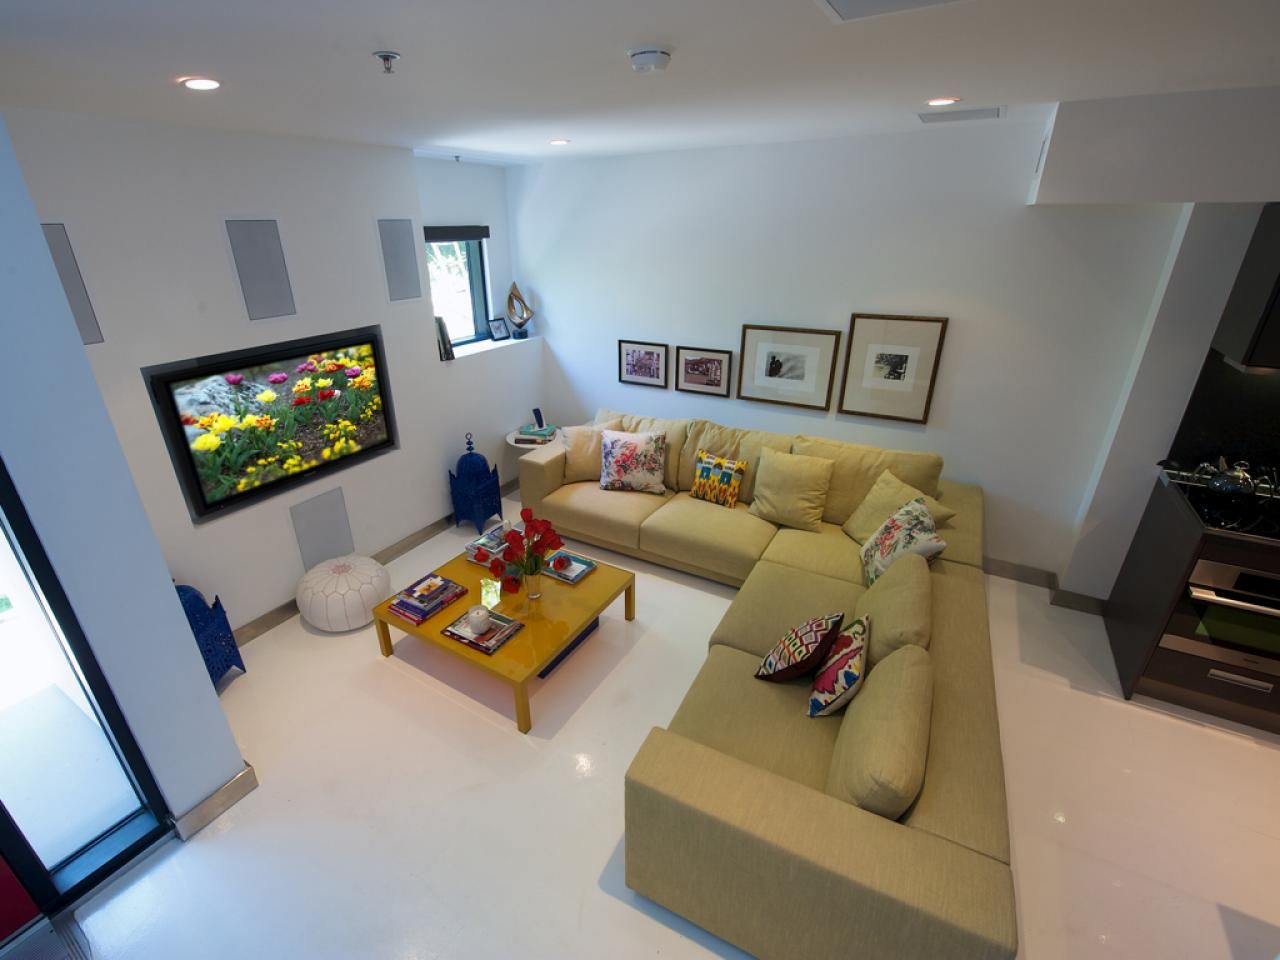 Media Room Design Ideas: Pictures, Options U0026 Tips | Home Remodeling   Ideas  For